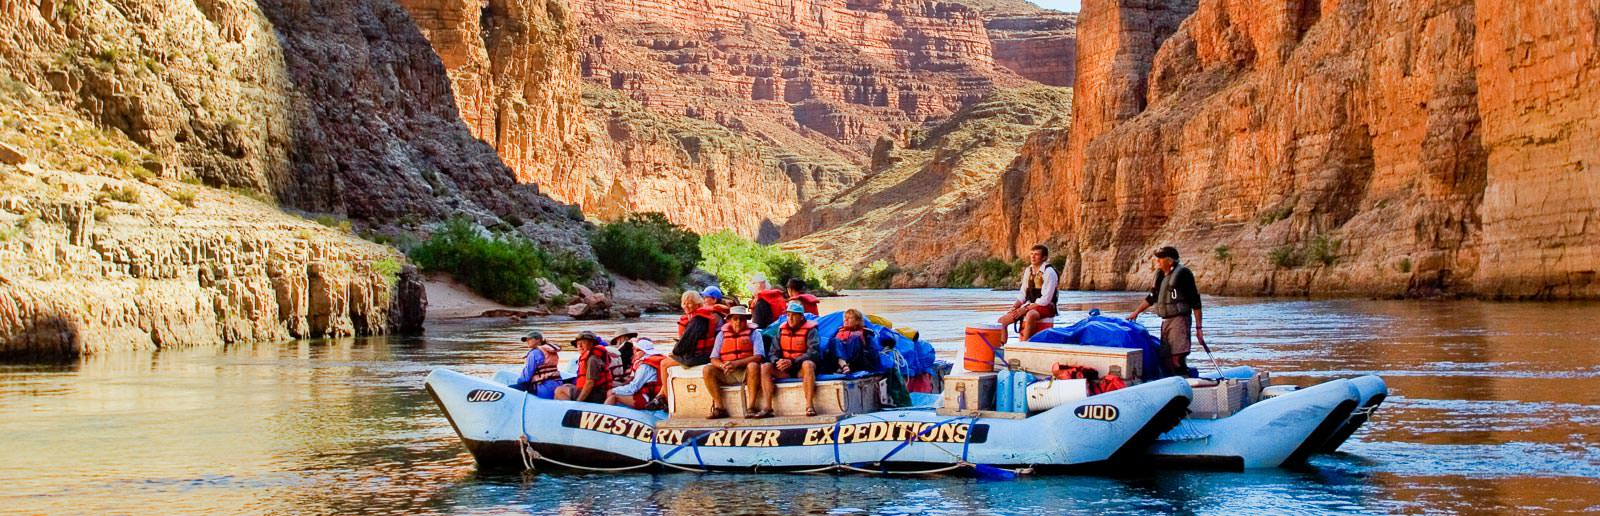 western river grand canyon rafting 3 day wrcany3. Black Bedroom Furniture Sets. Home Design Ideas